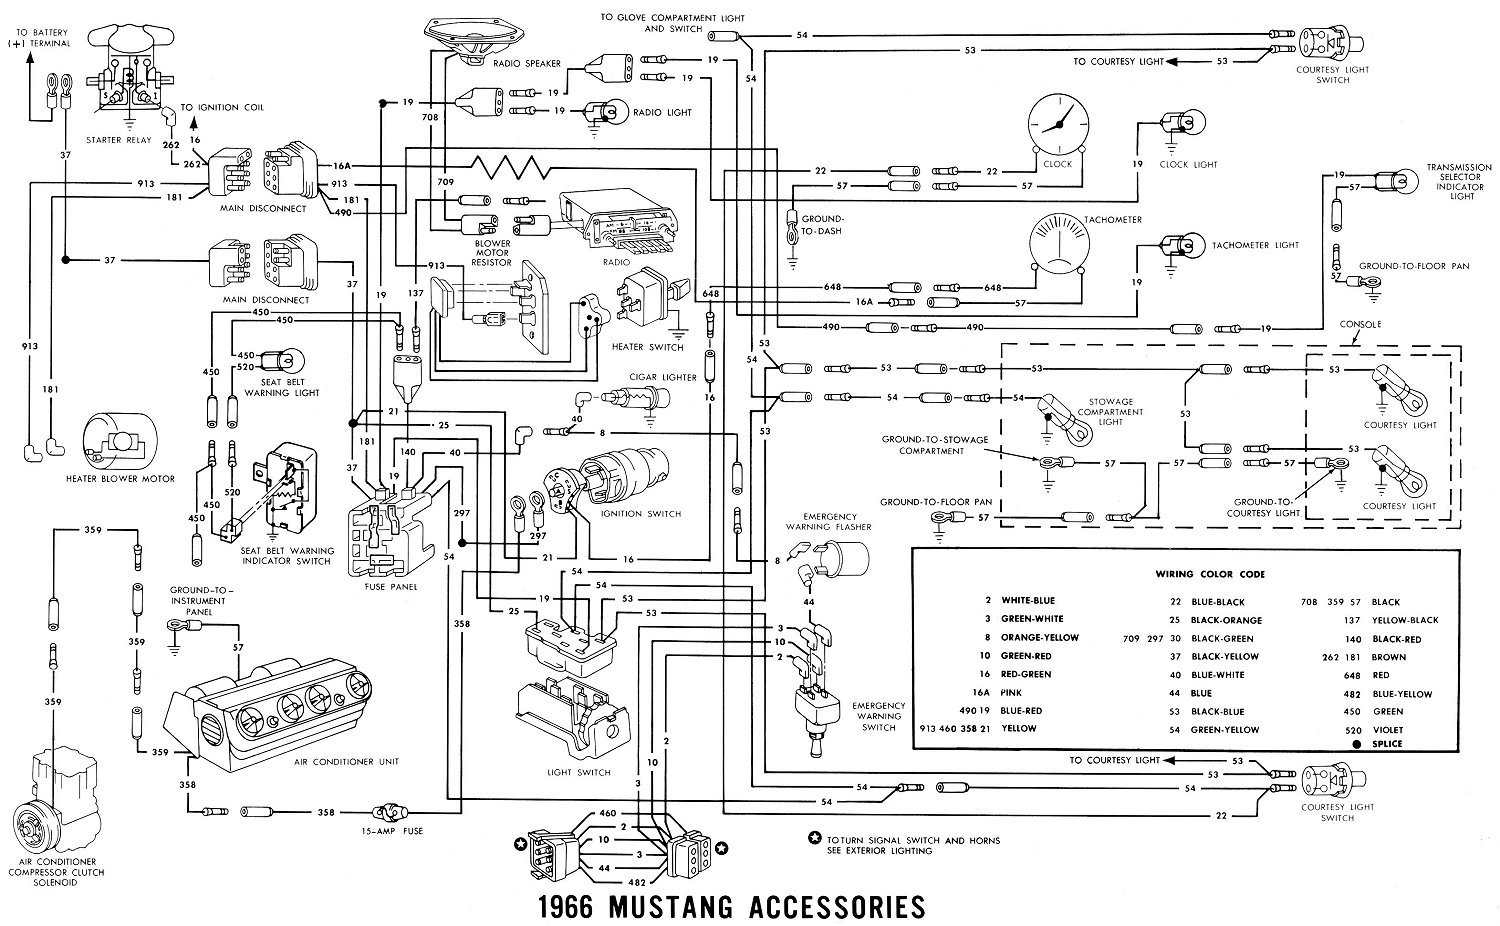 134329d1310481753 two unknown connectors wiring harness 66acces1 two unknown connectors in wiring harness? ford mustang forum Wiring Harness Diagram at bakdesigns.co